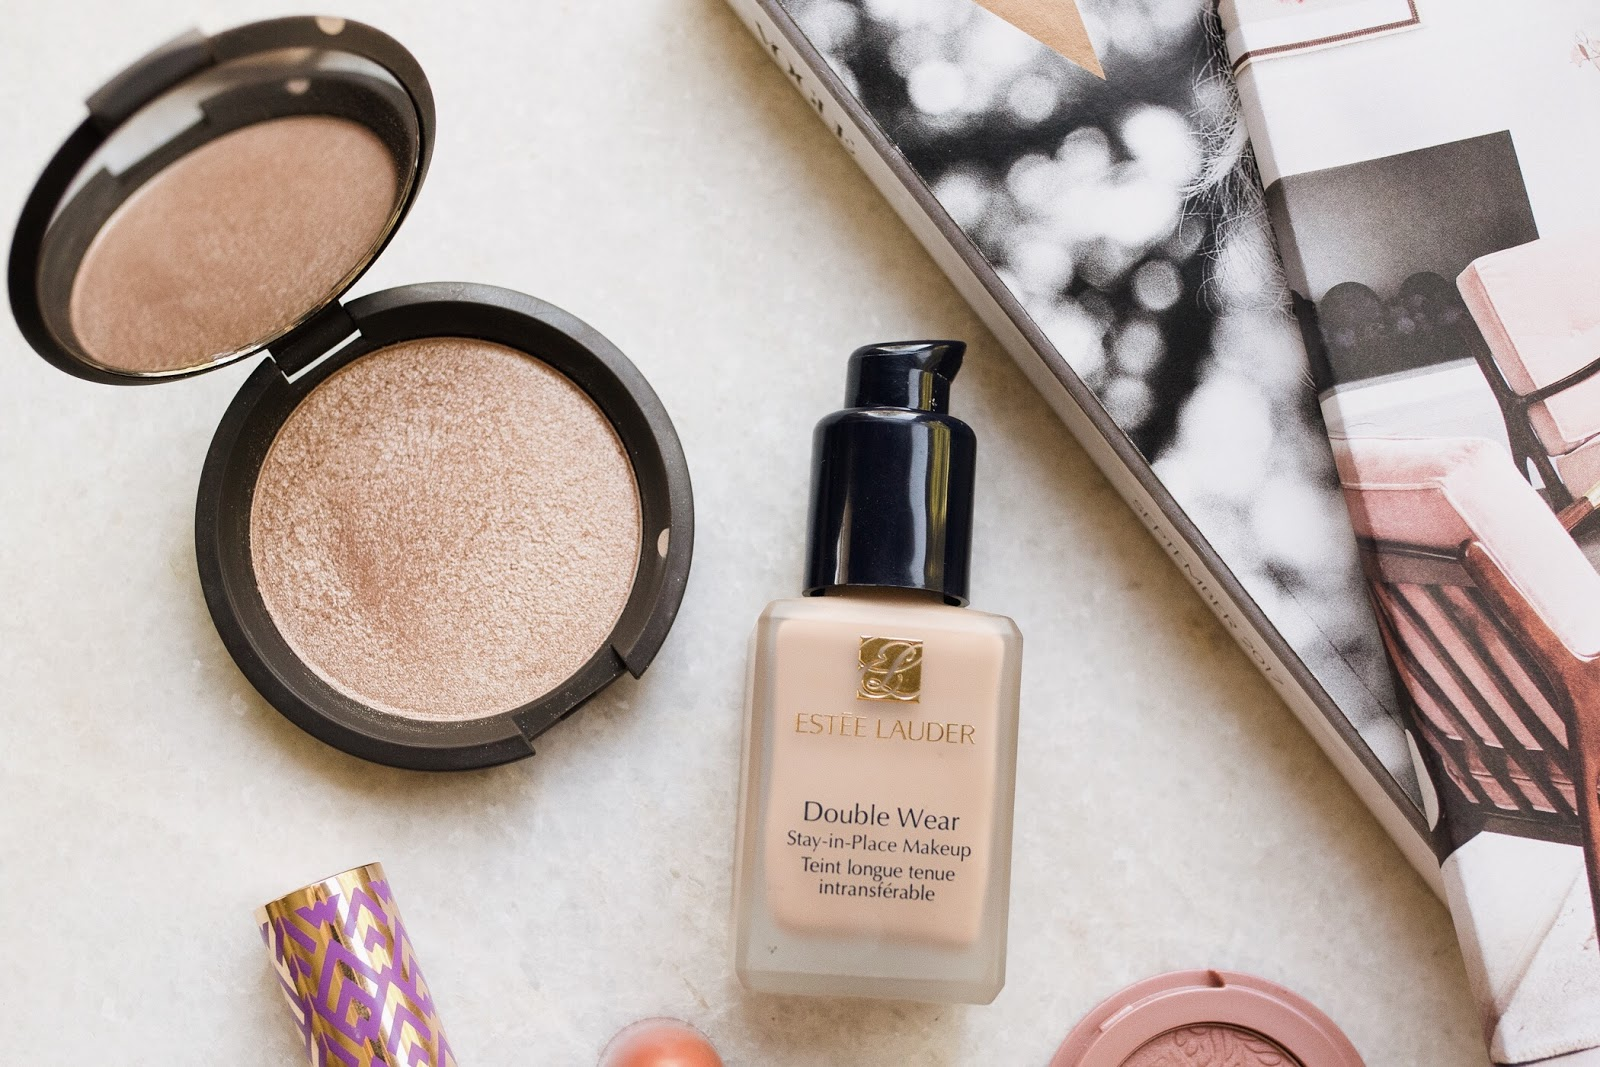 THE best full coverage foundation - Estee Lauder Double Wear